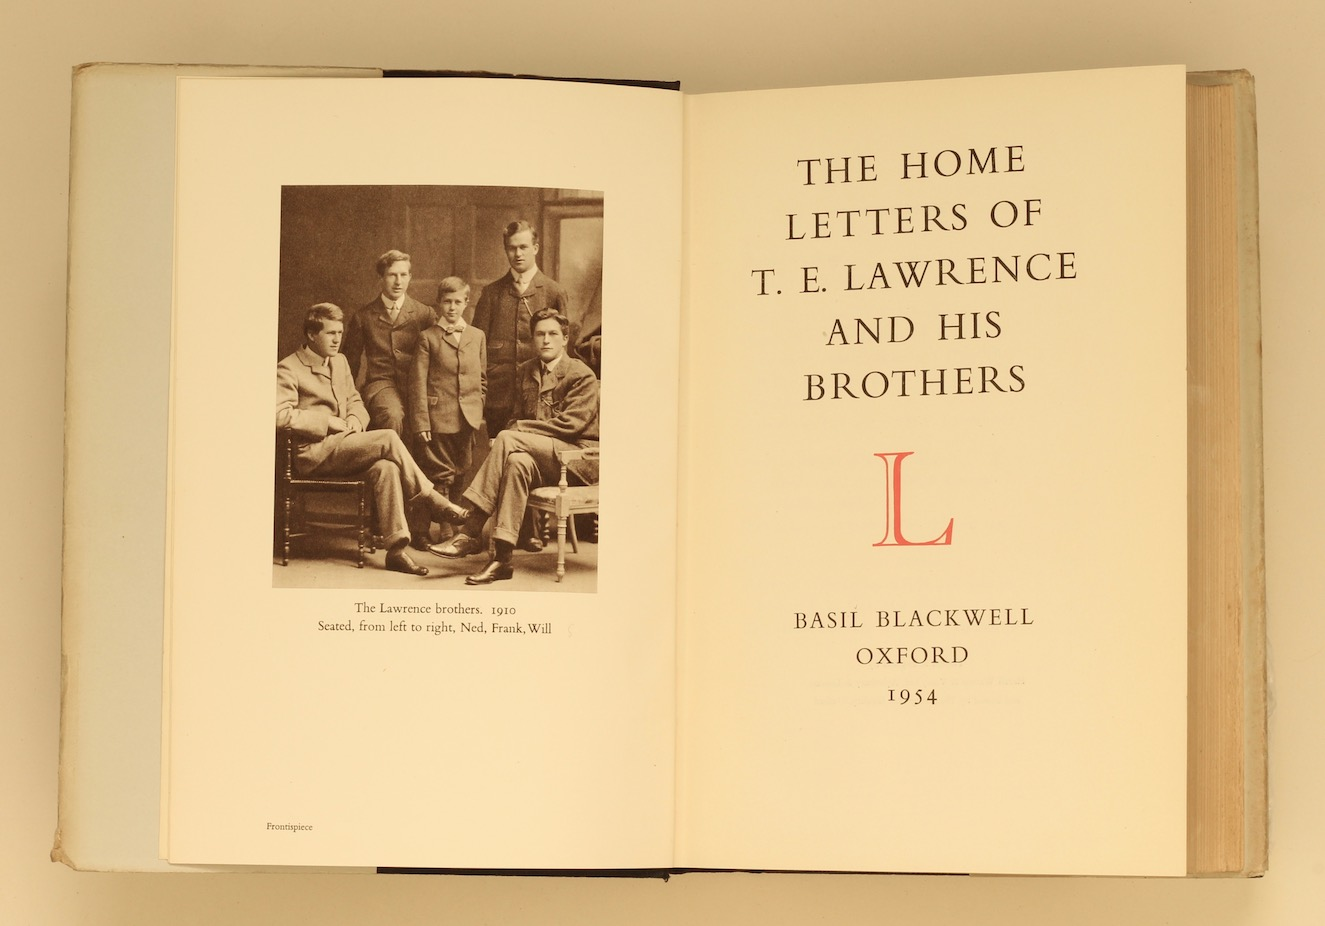 The Home Letters of T.E. Lawrence and his Brothers, 1954 – bequeathed to Jeremy Wilson. £295